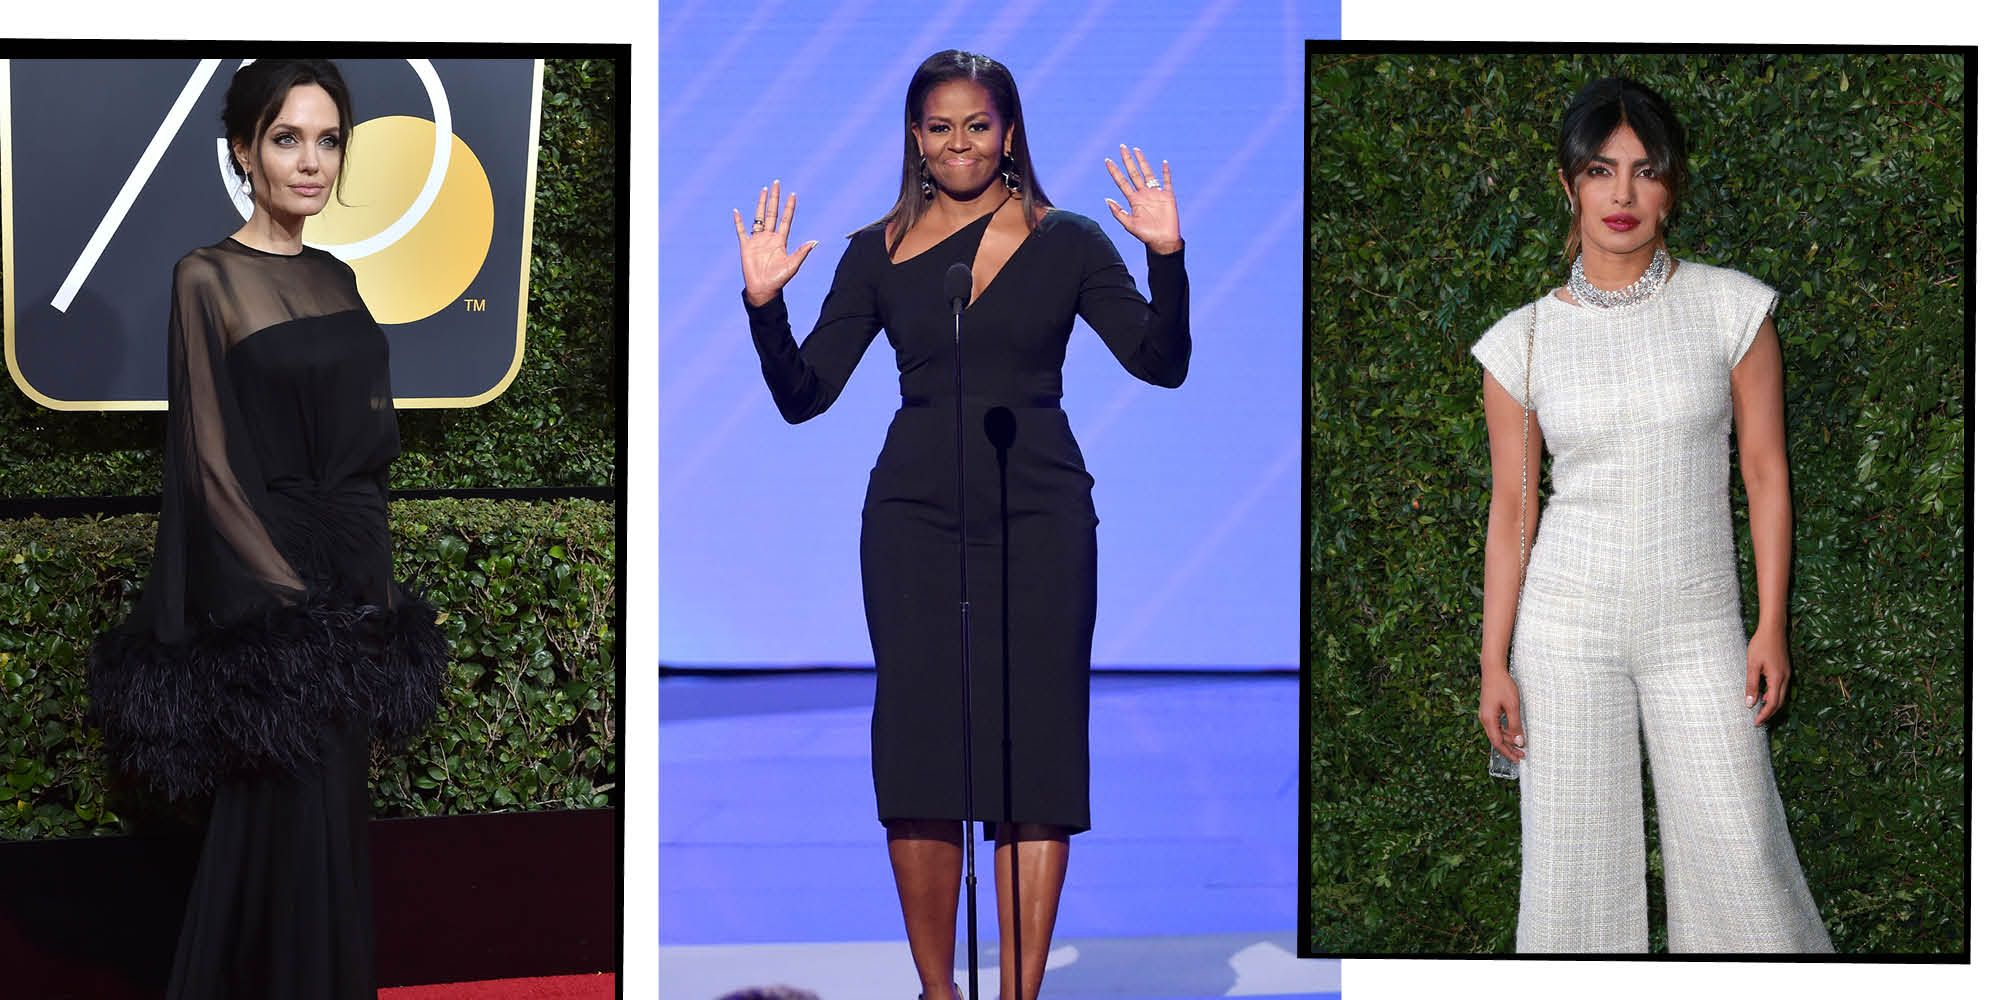 Michelle Obama Has Been Named The Most Admired Woman In The World